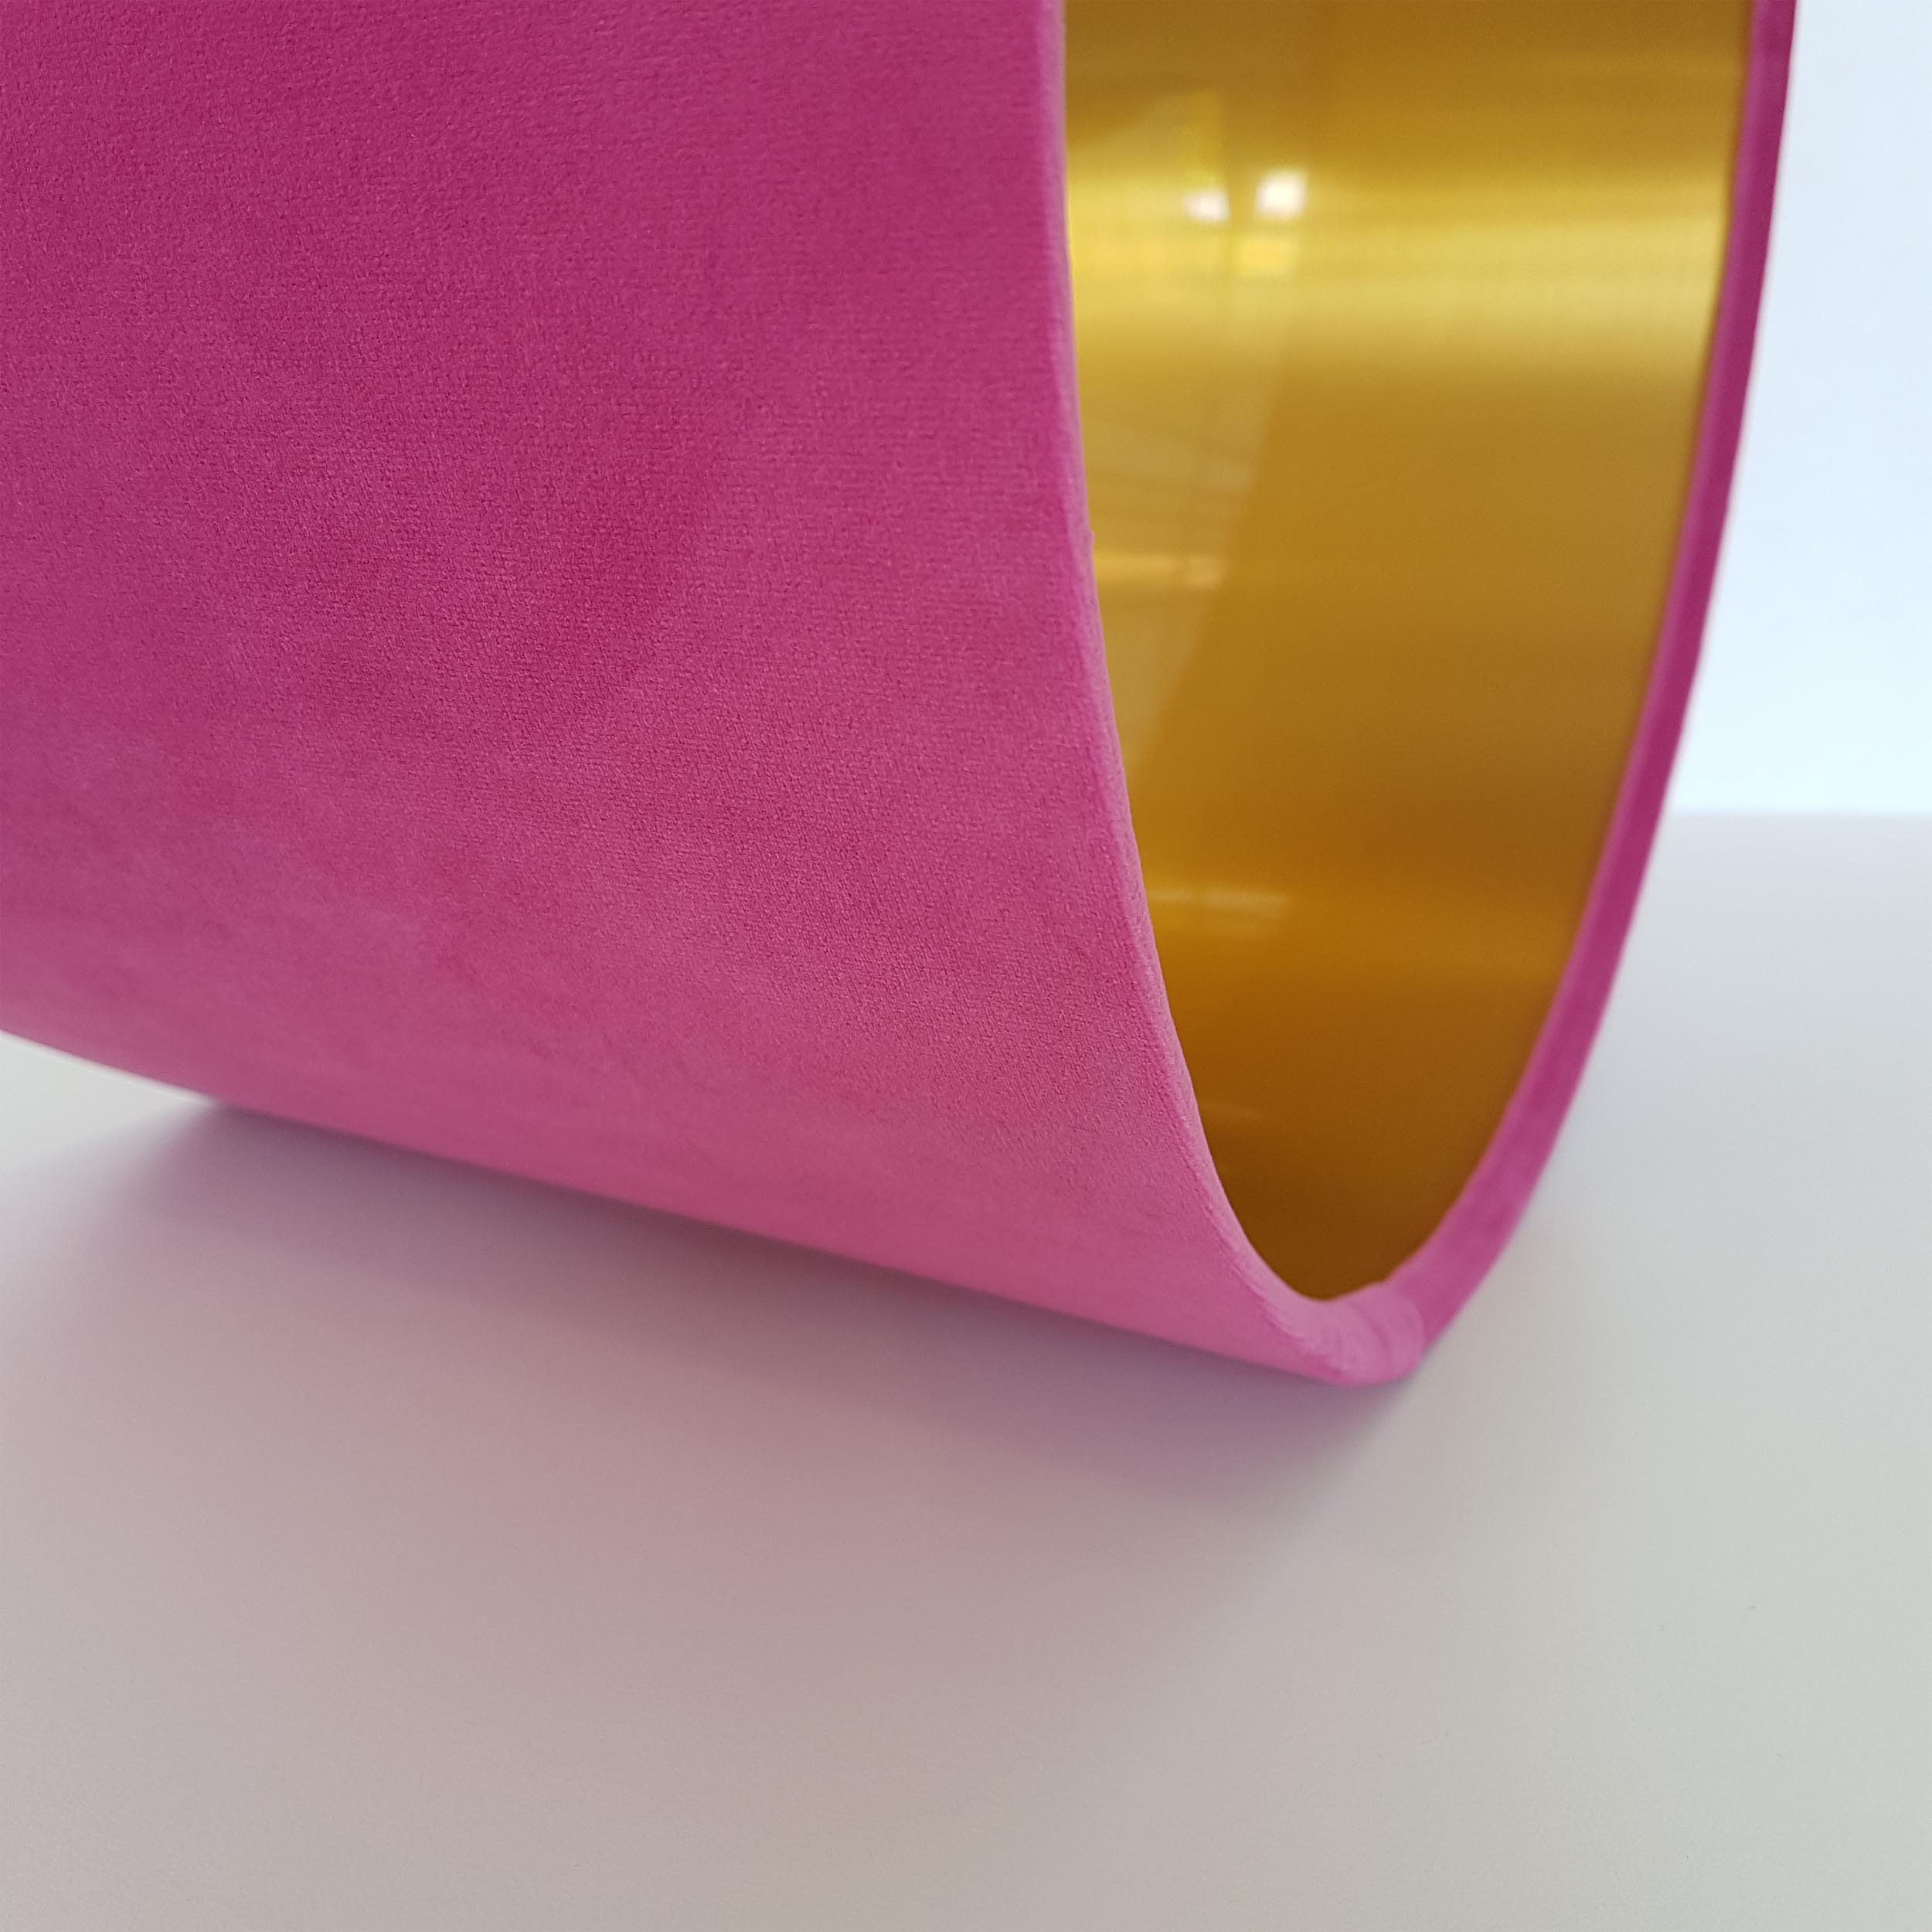 Pink Velvet and Brushed Gold Lampshade